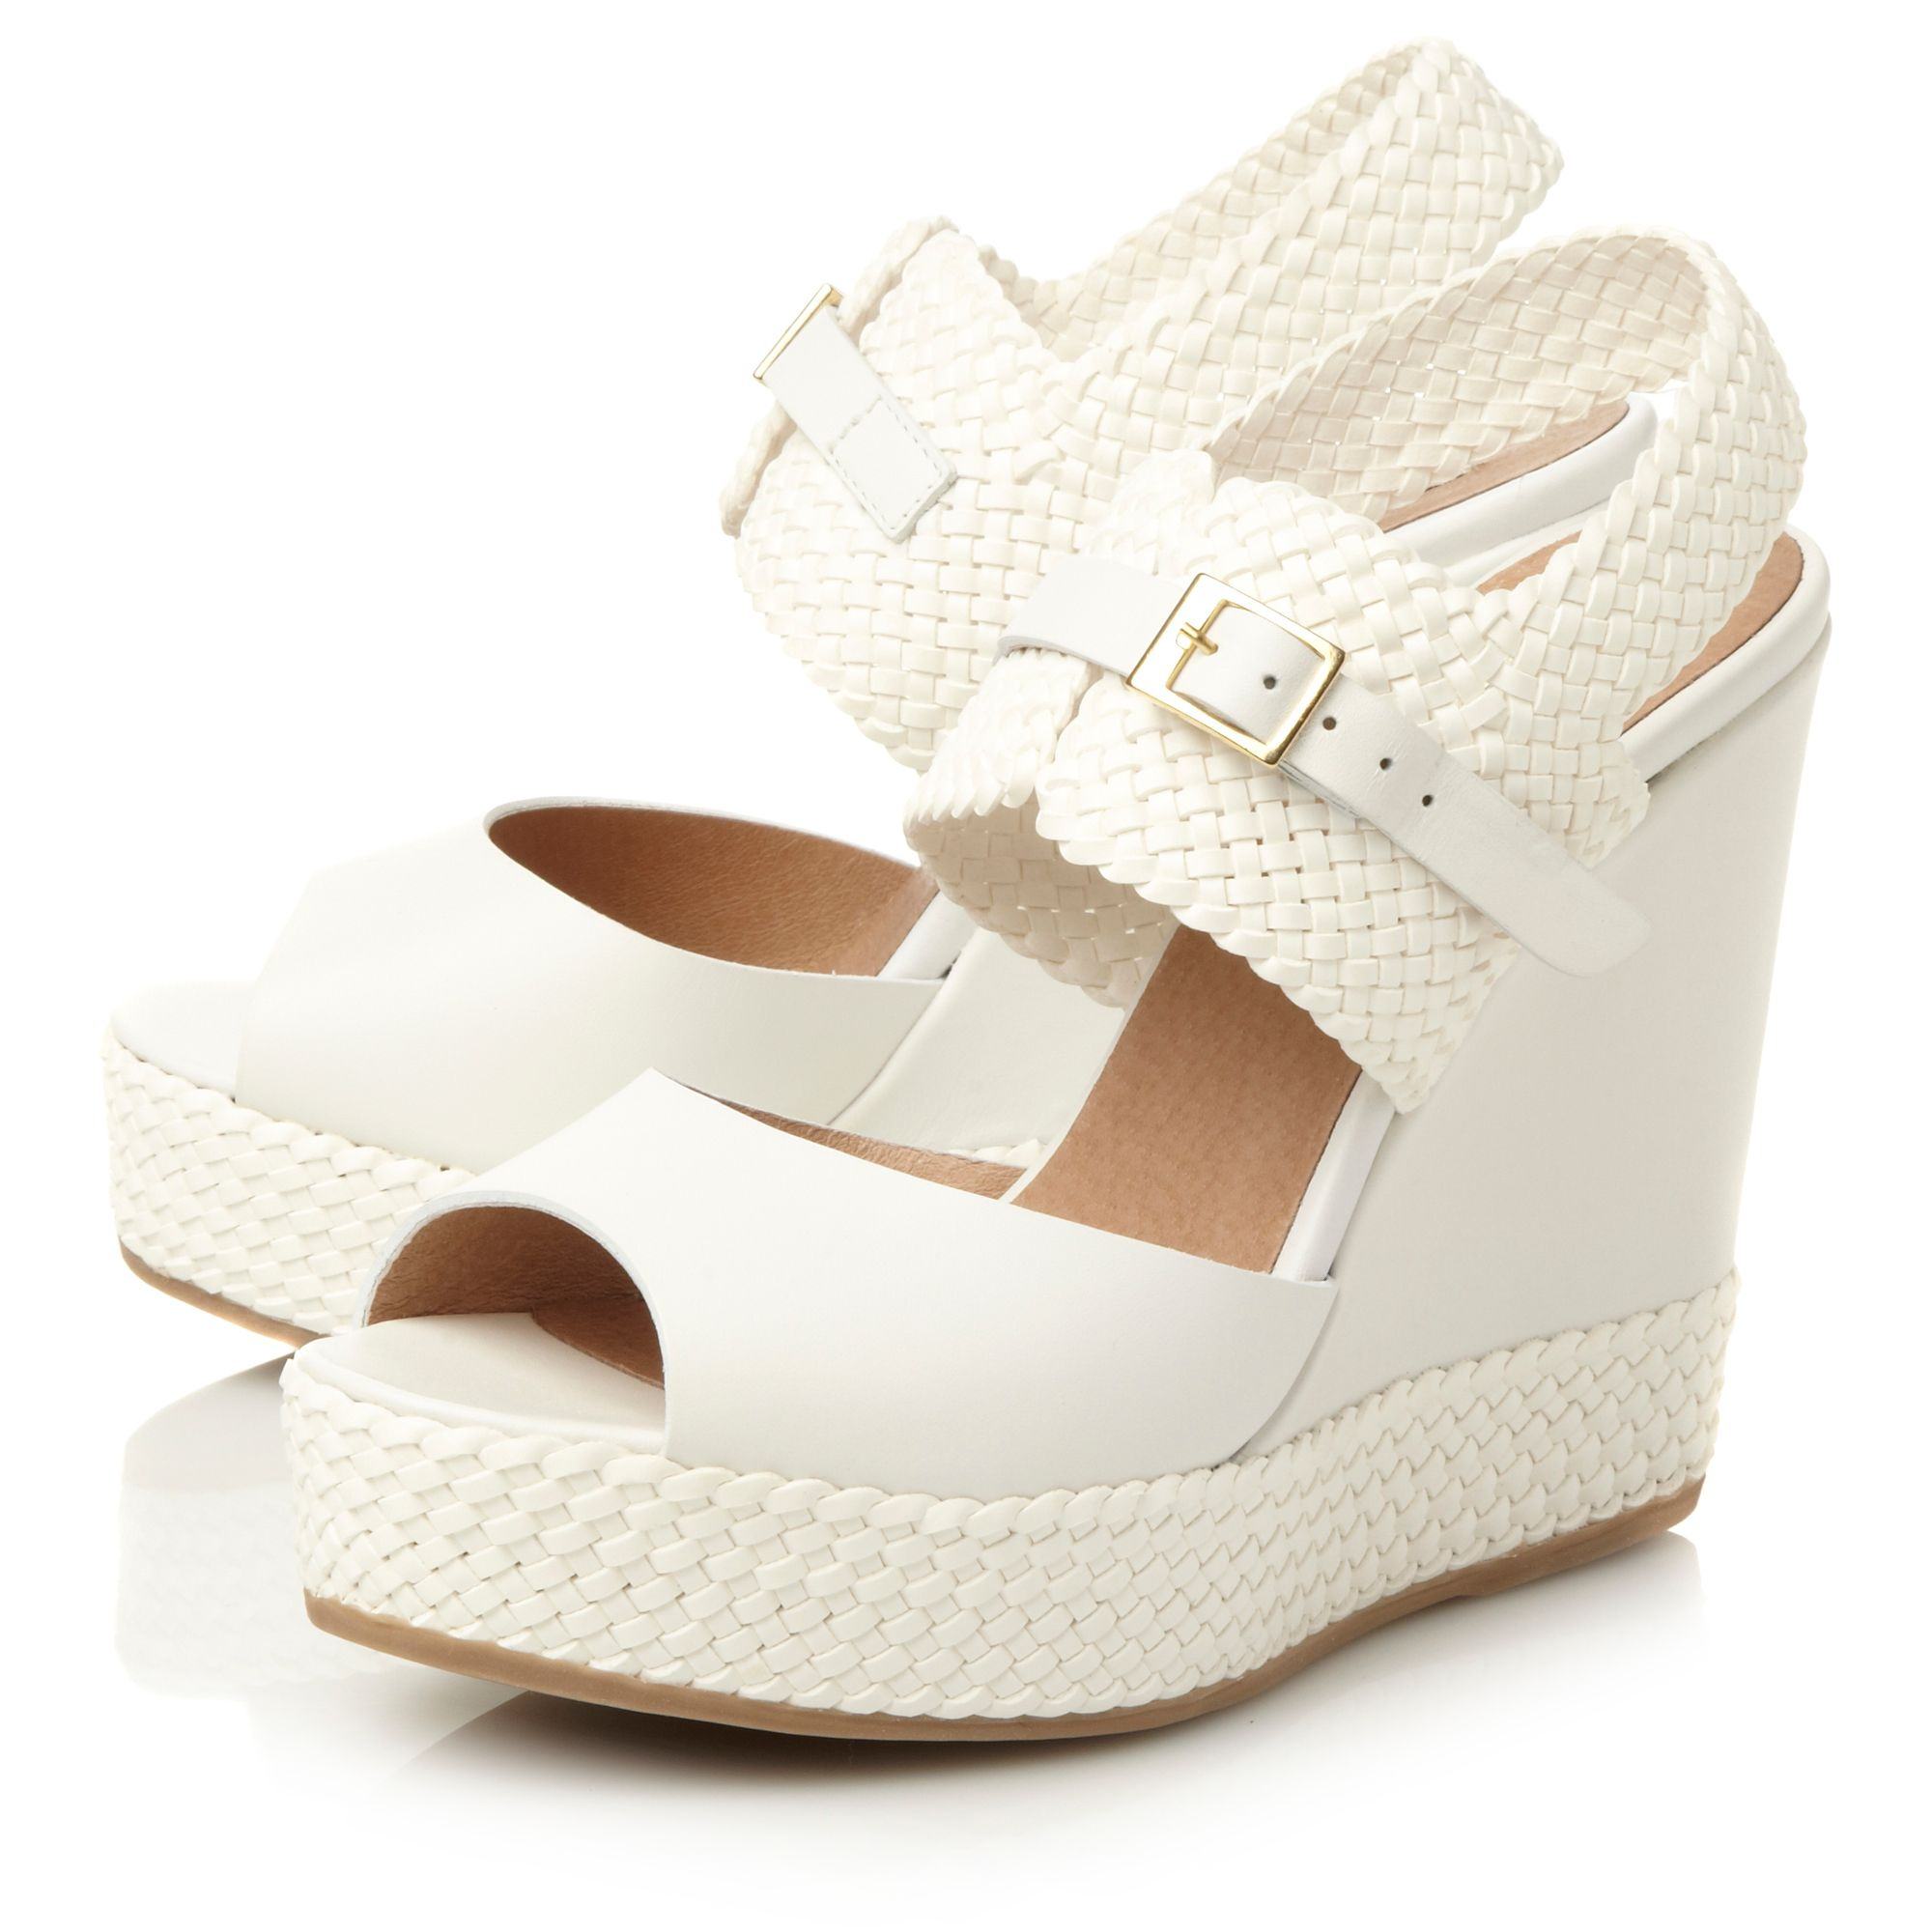 Litzy woven wedge with buckle